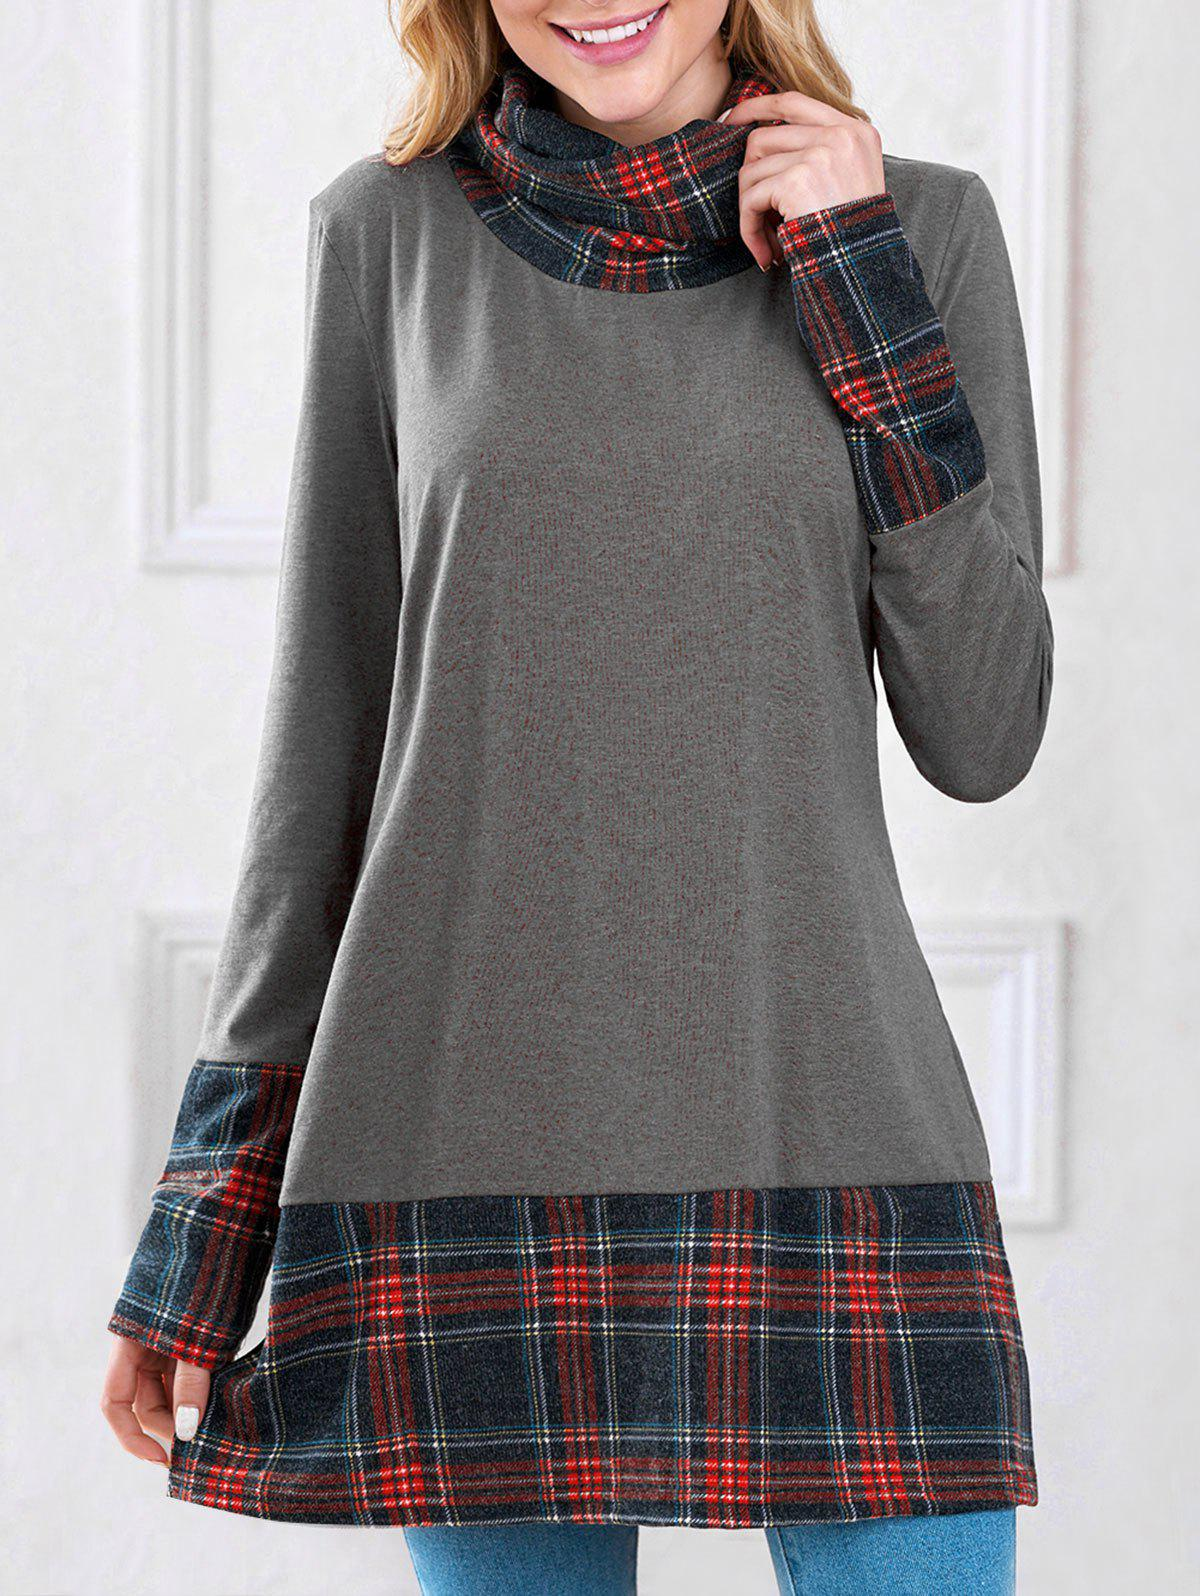 Long Sleeve Plaid Insert Sweatshirt - GRAY M